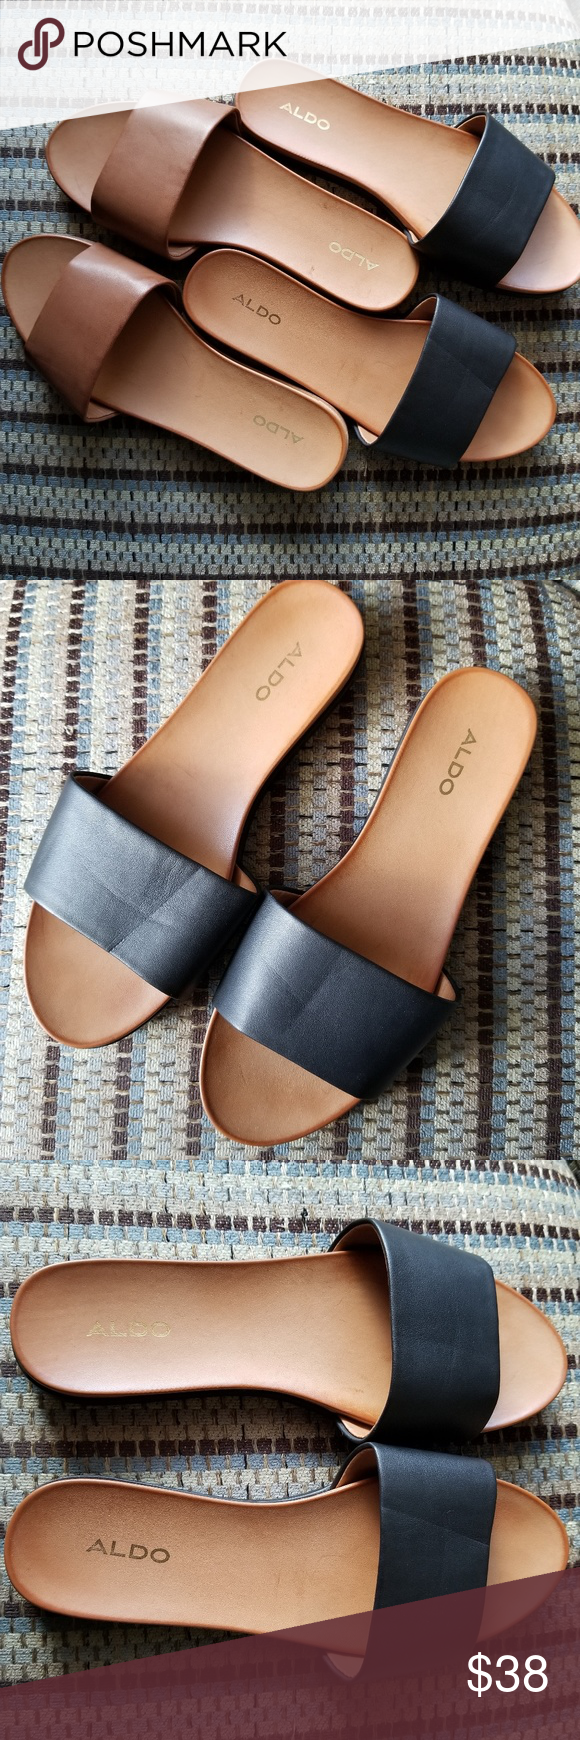 7eeae1a3f81 Aldo Fabrizzia Slide Sandals black and cognac TWO PAIRS of Aldo Fabrizzia  slide sandals - one